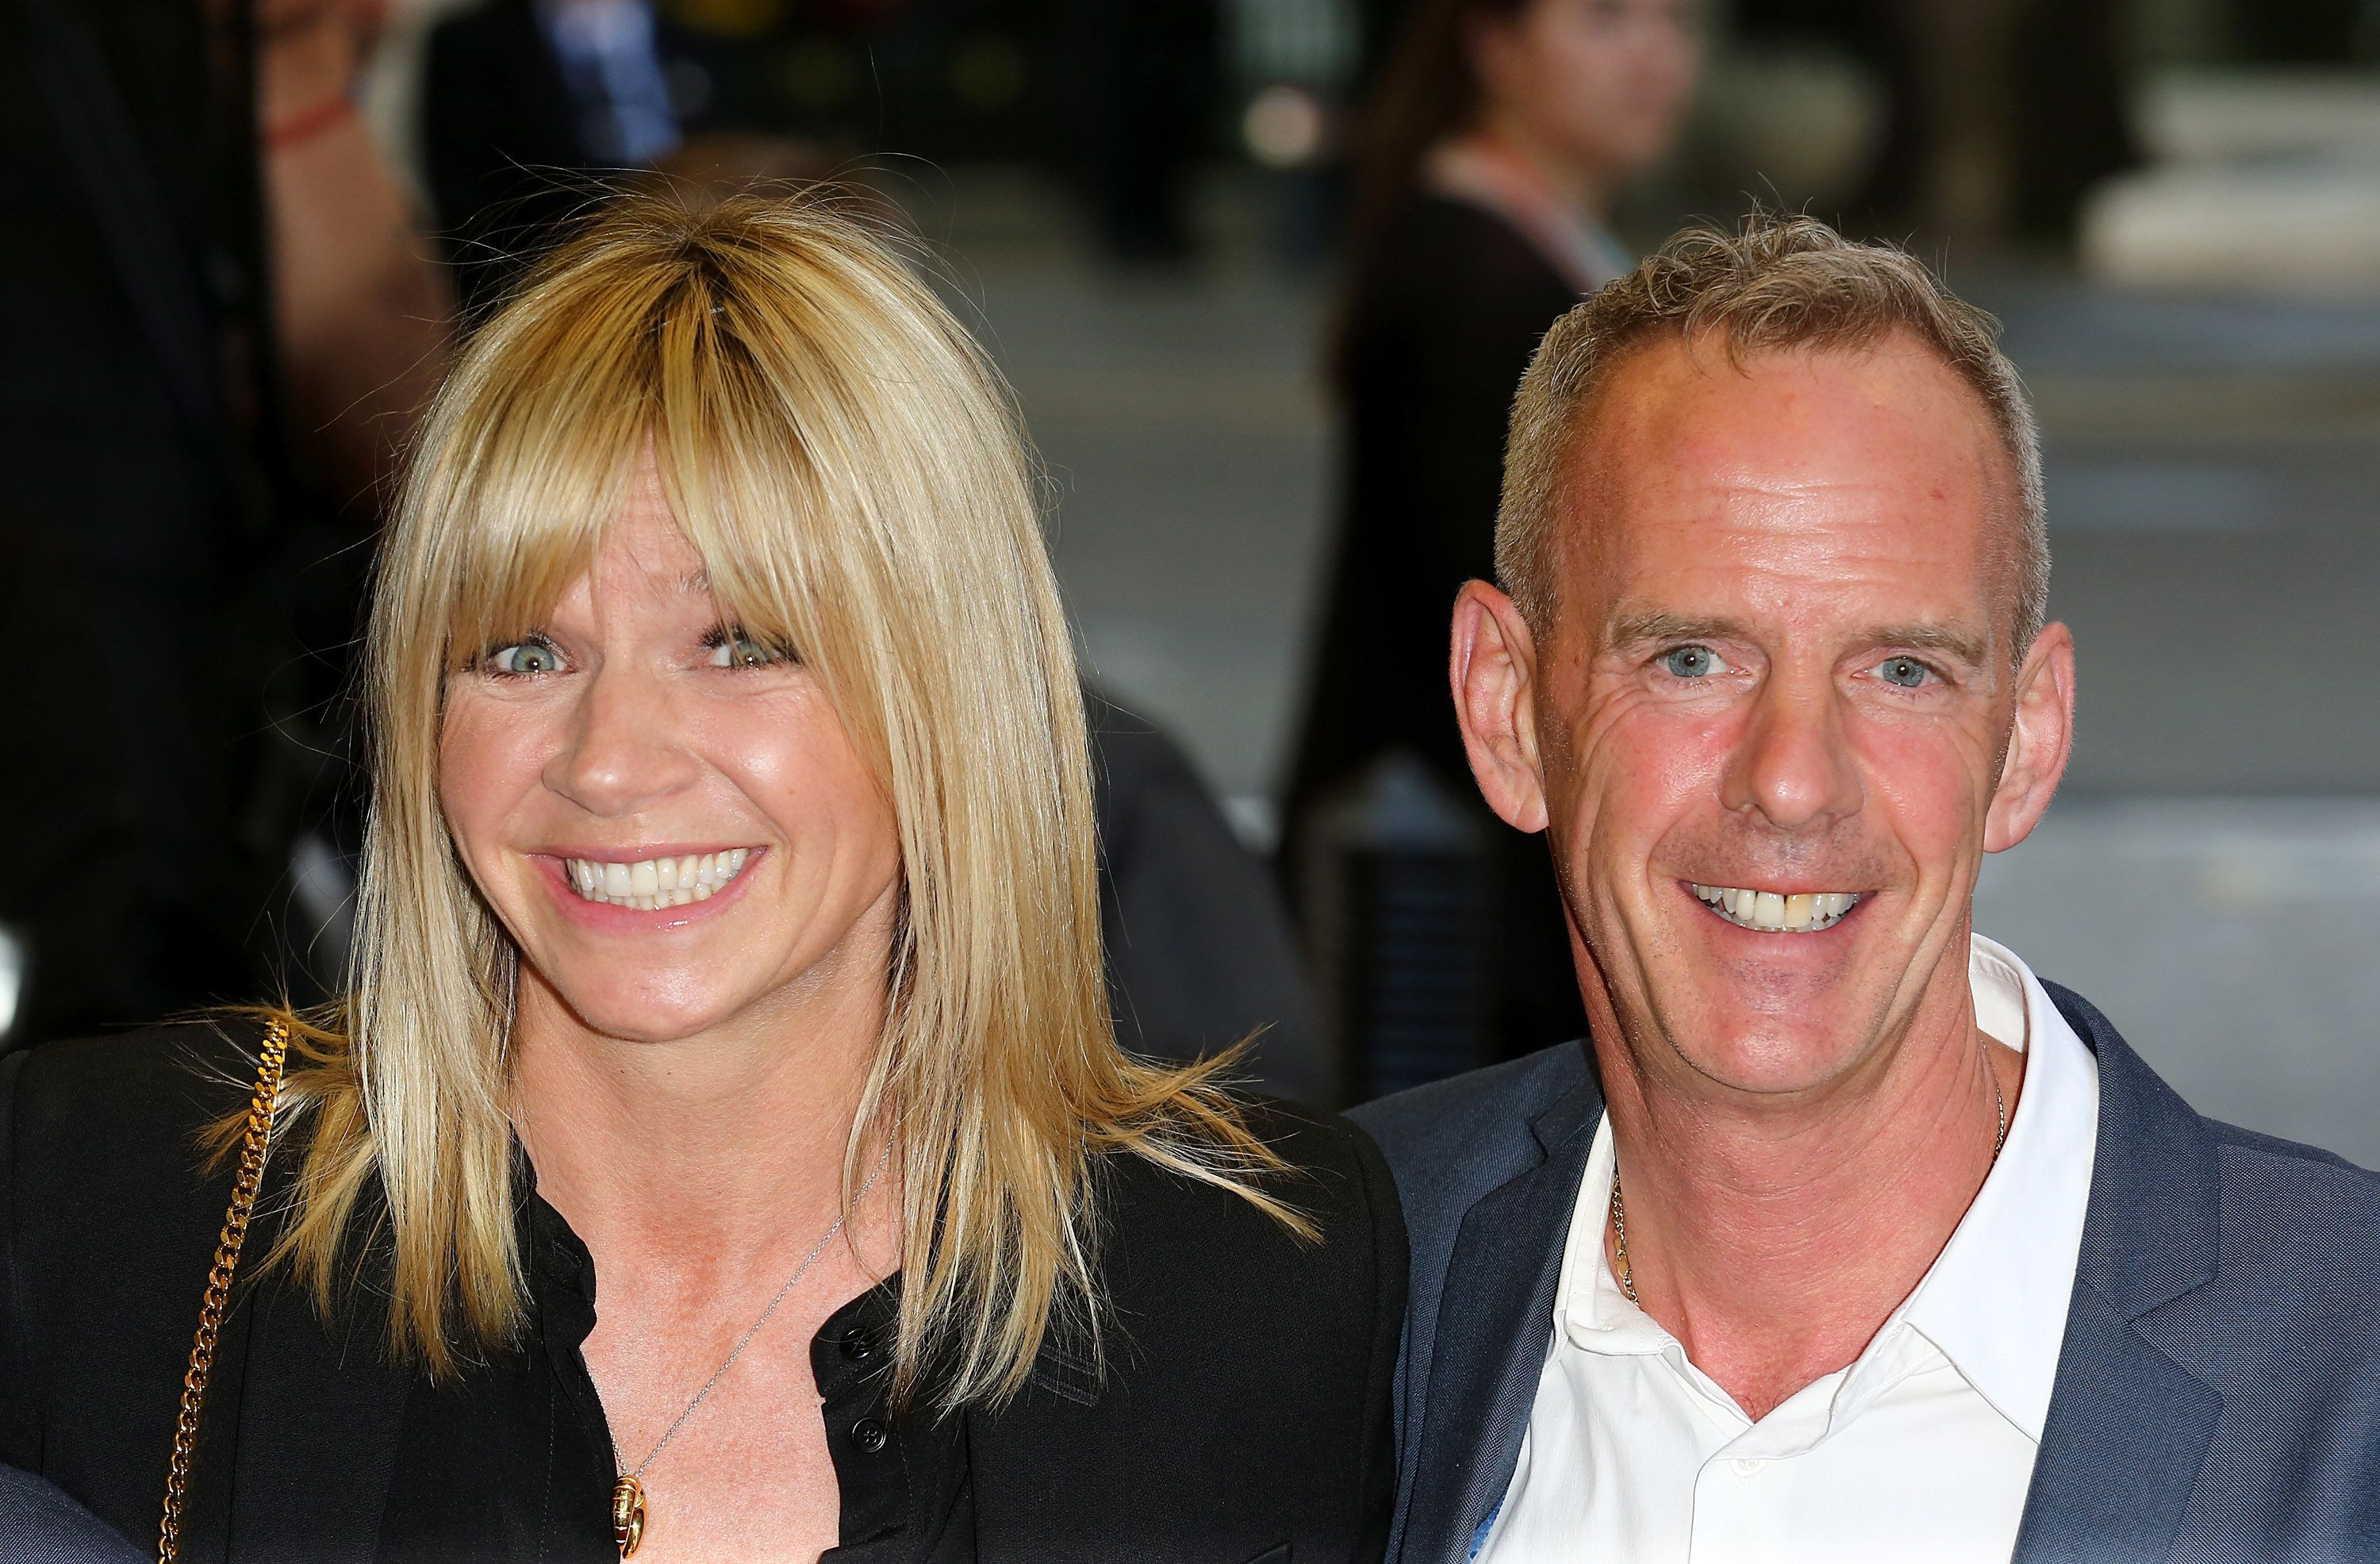 Norman Cook Opens Up About Zoe Ball Marital